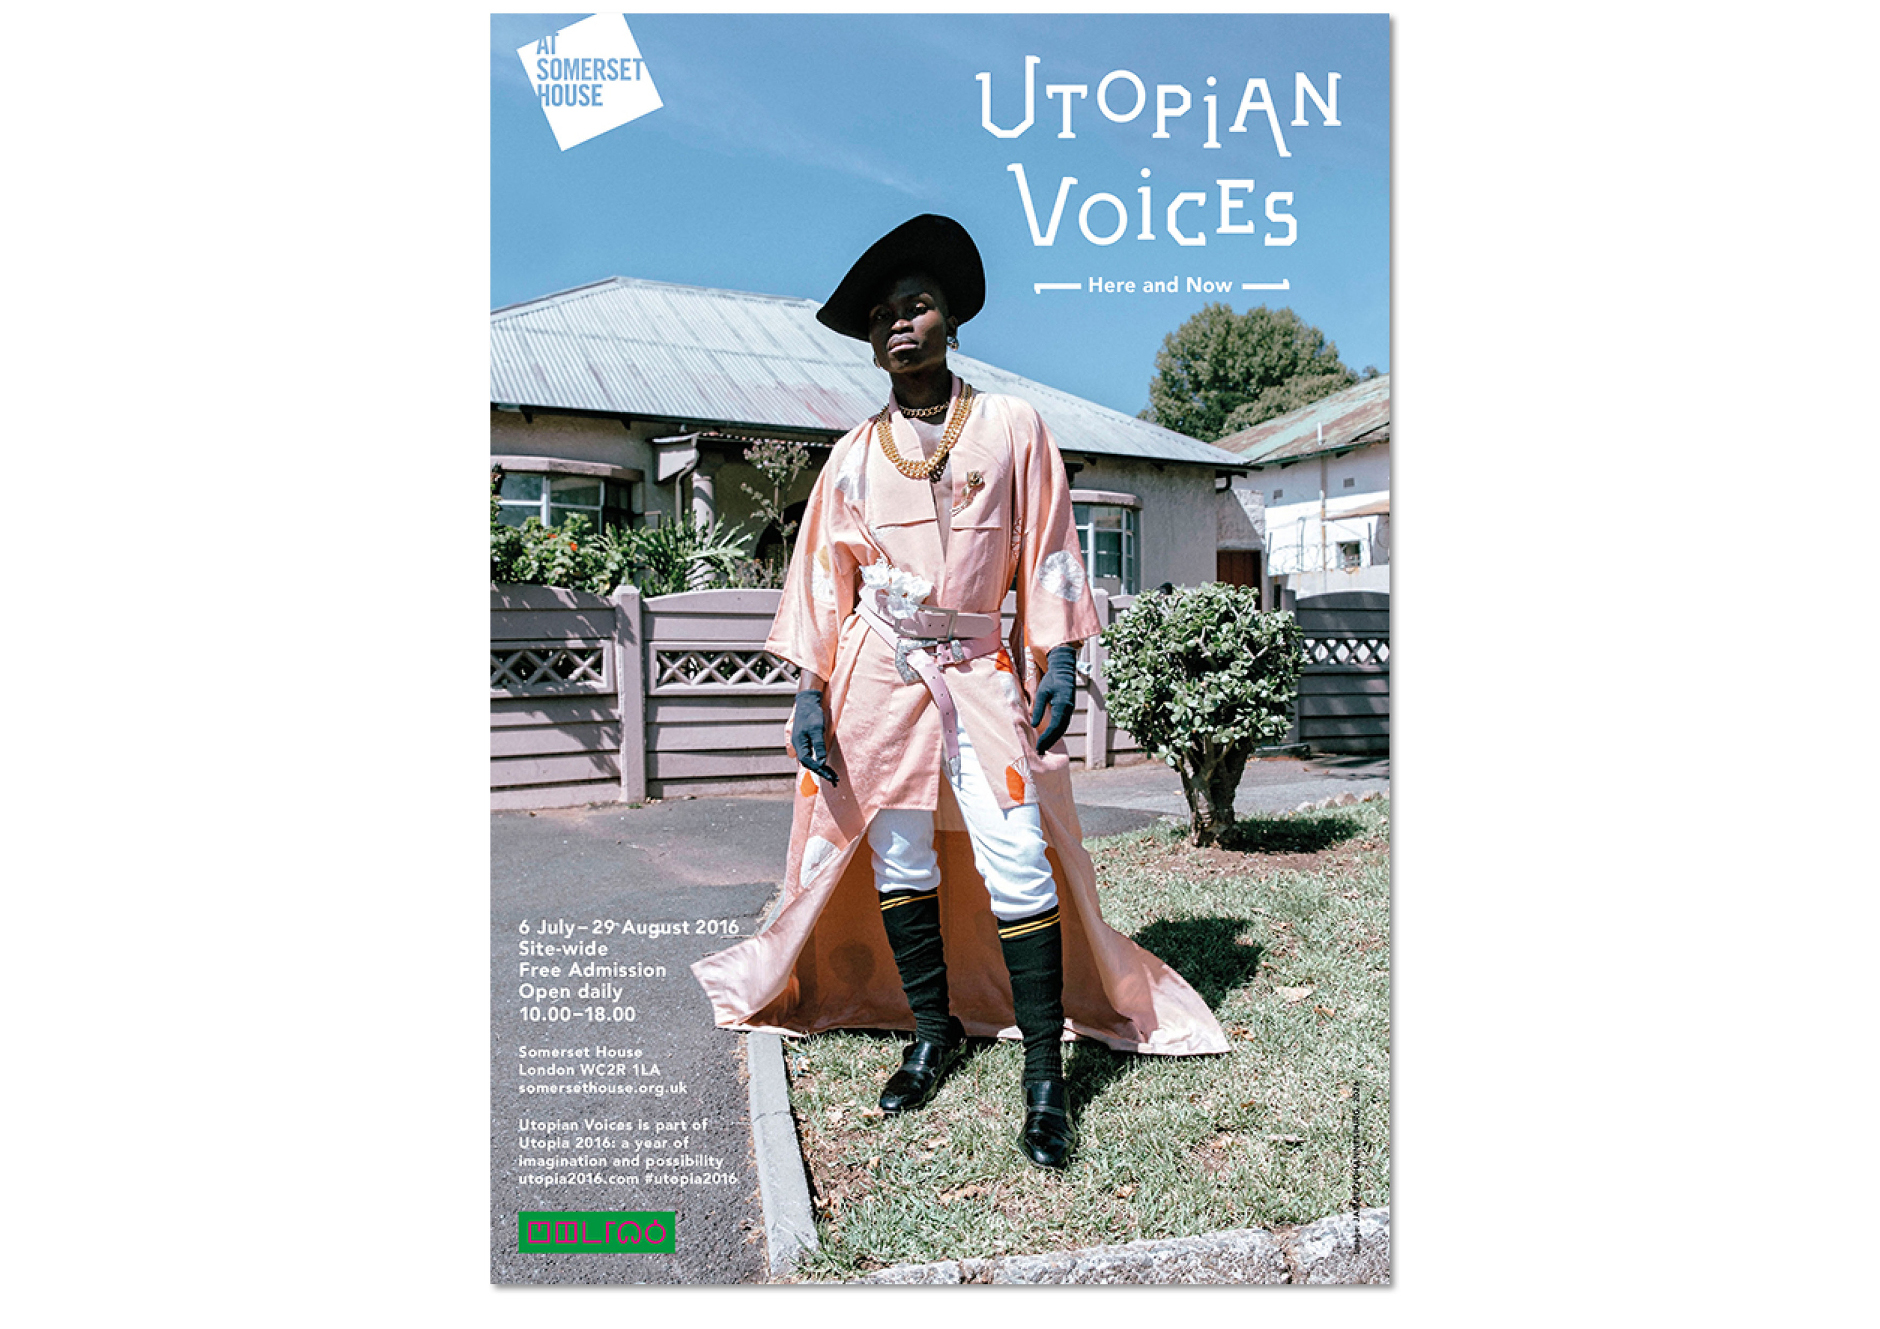 Somerset_House_Utopian_Voices